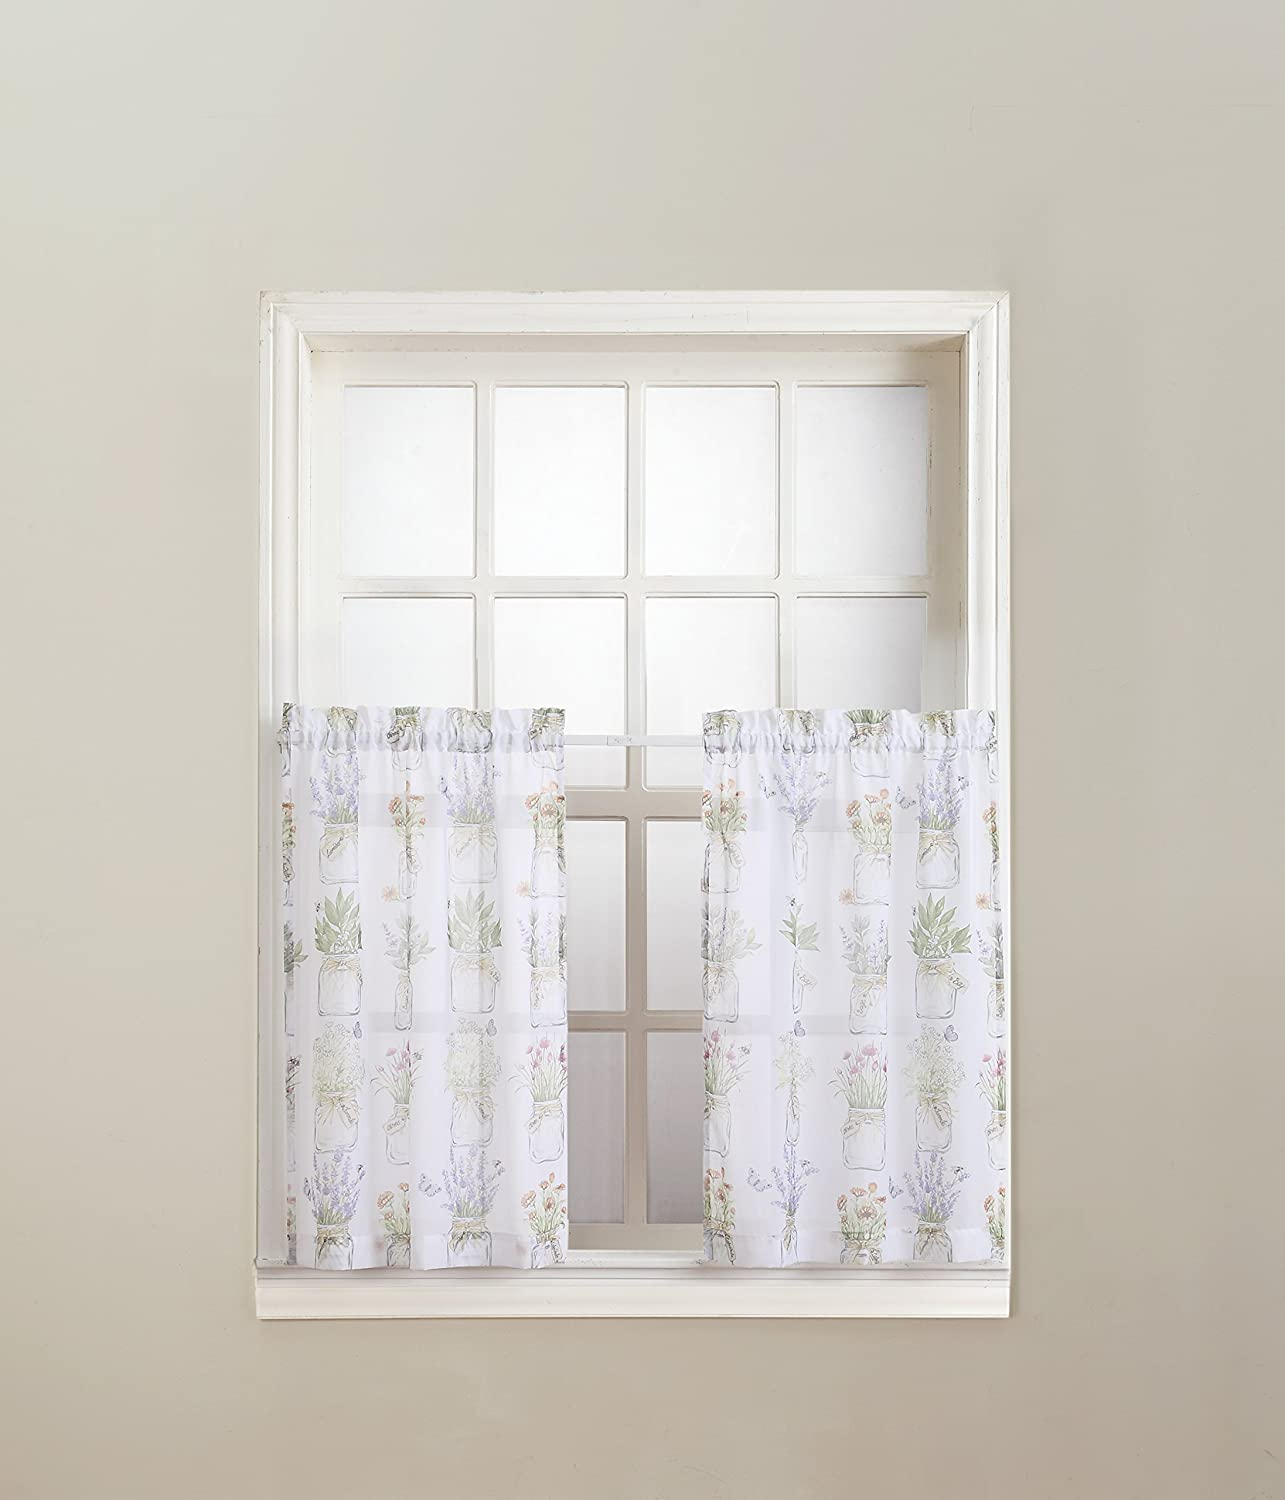 No. 918 Eve's Garden Floral Print Kitchen Curtain Valance, 54